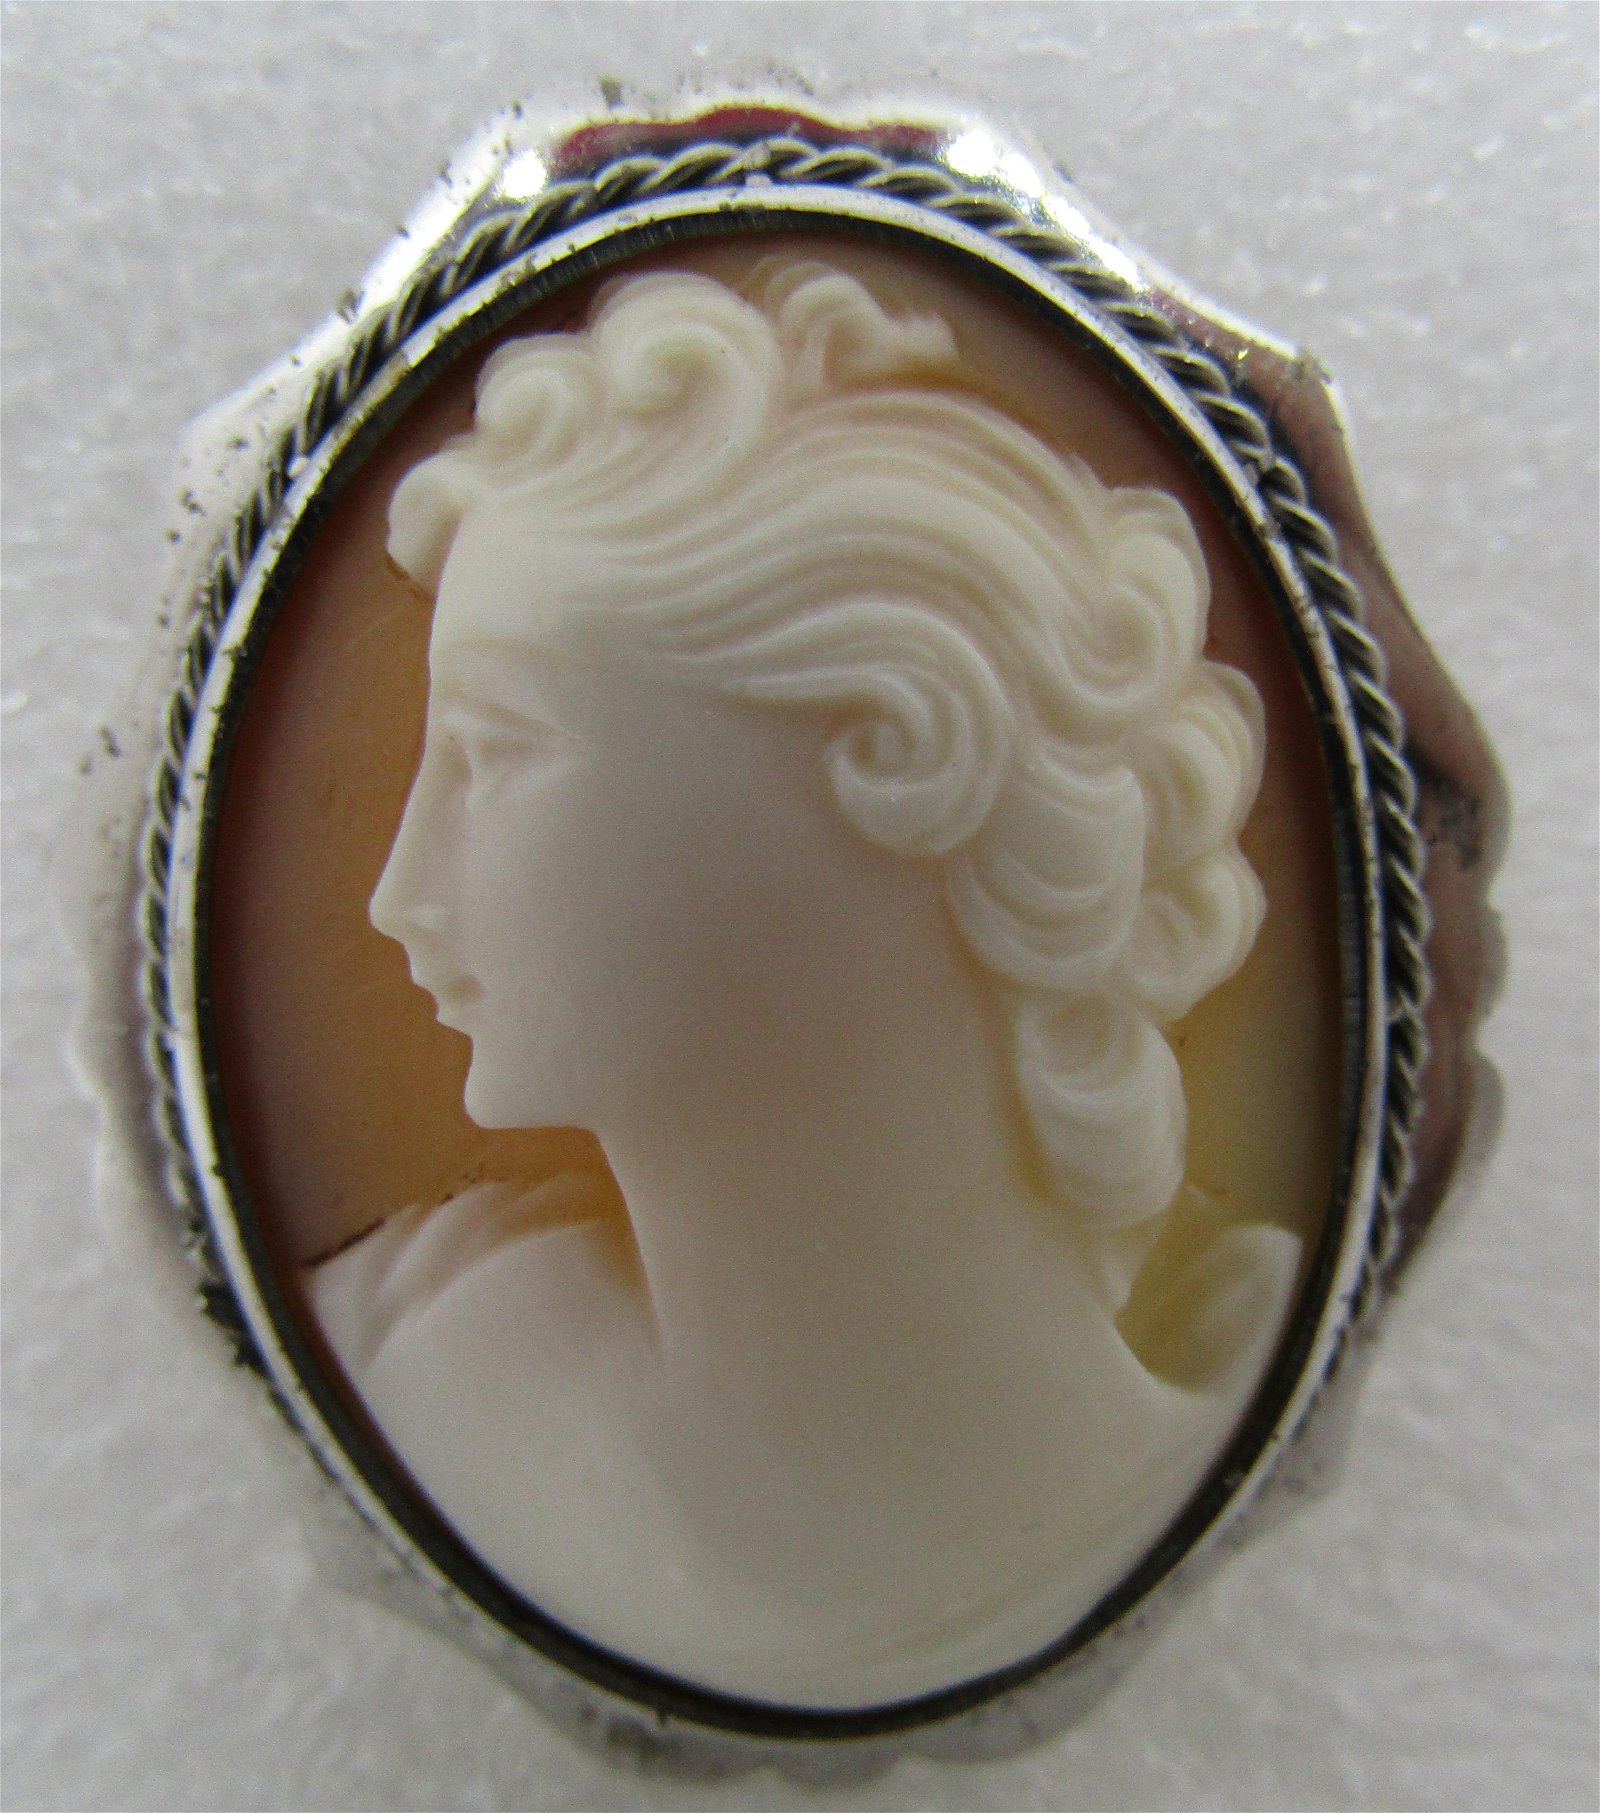 CAMEO PIN PENDANT BROOCH STERLING SILVER &10K GOLD